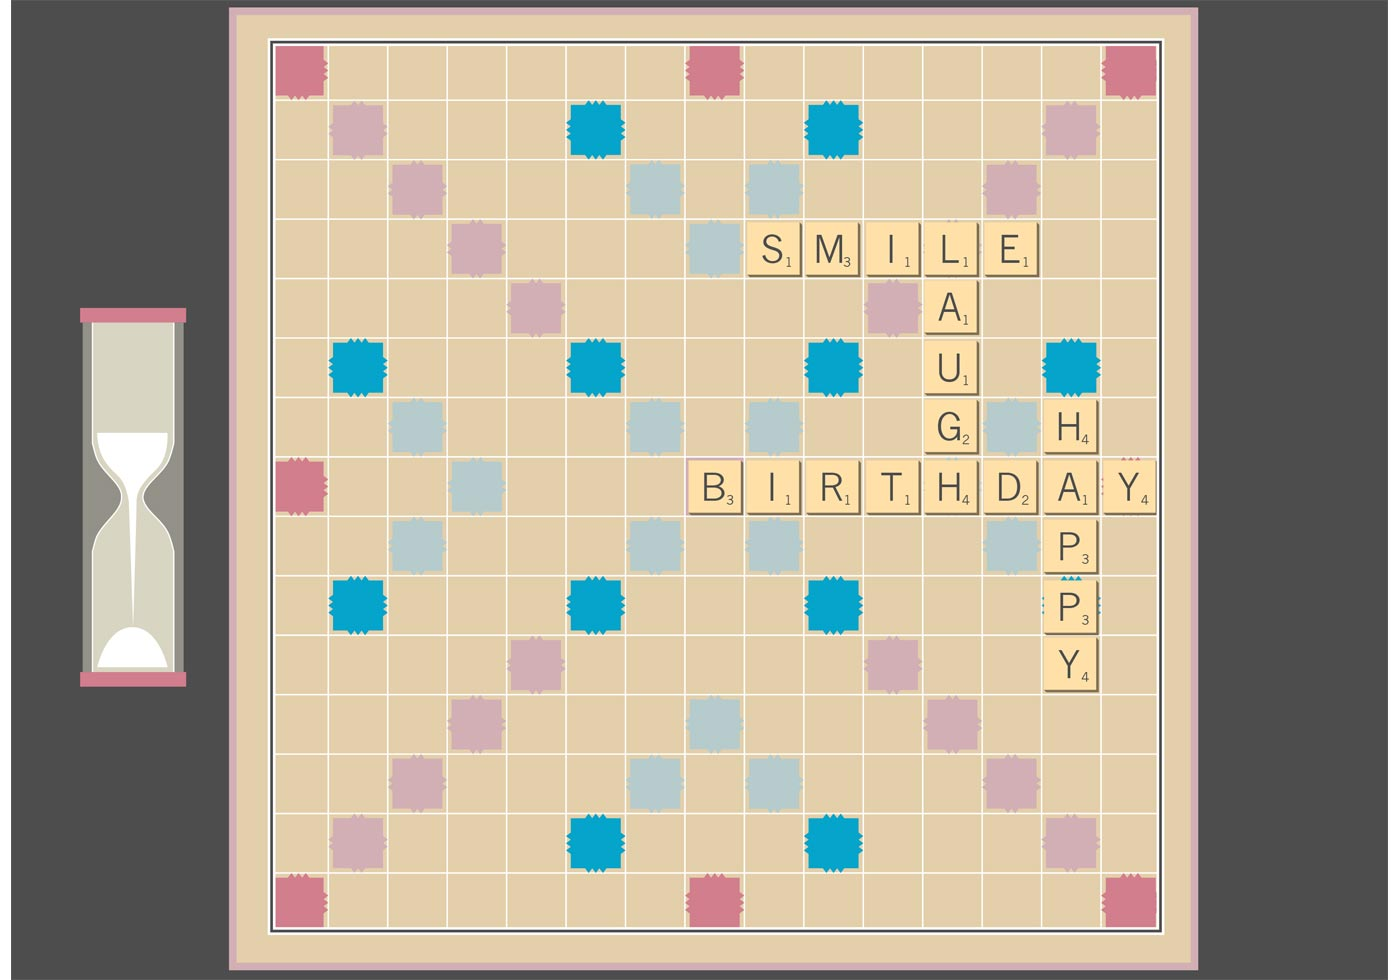 Scrabble board free fector download free vector art for Scrabble template printable